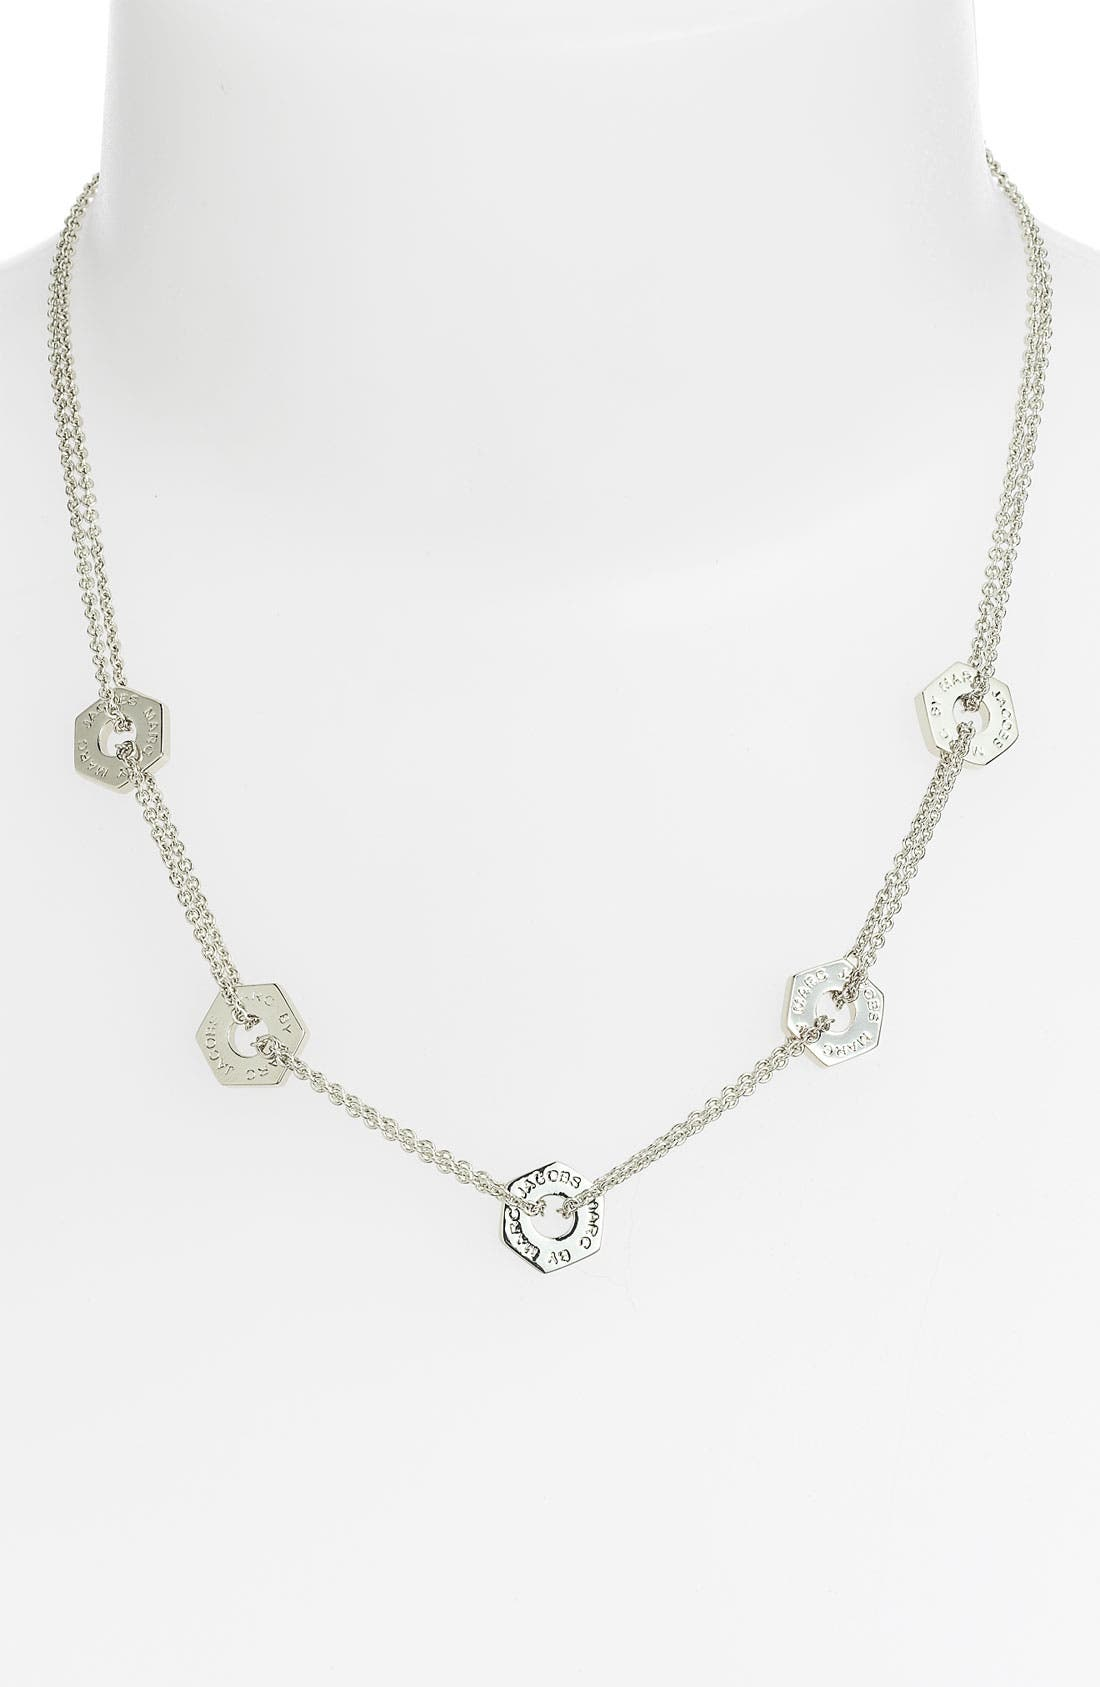 Main Image - MARC BY MARC JACOBS 'Bolts' Station Necklace